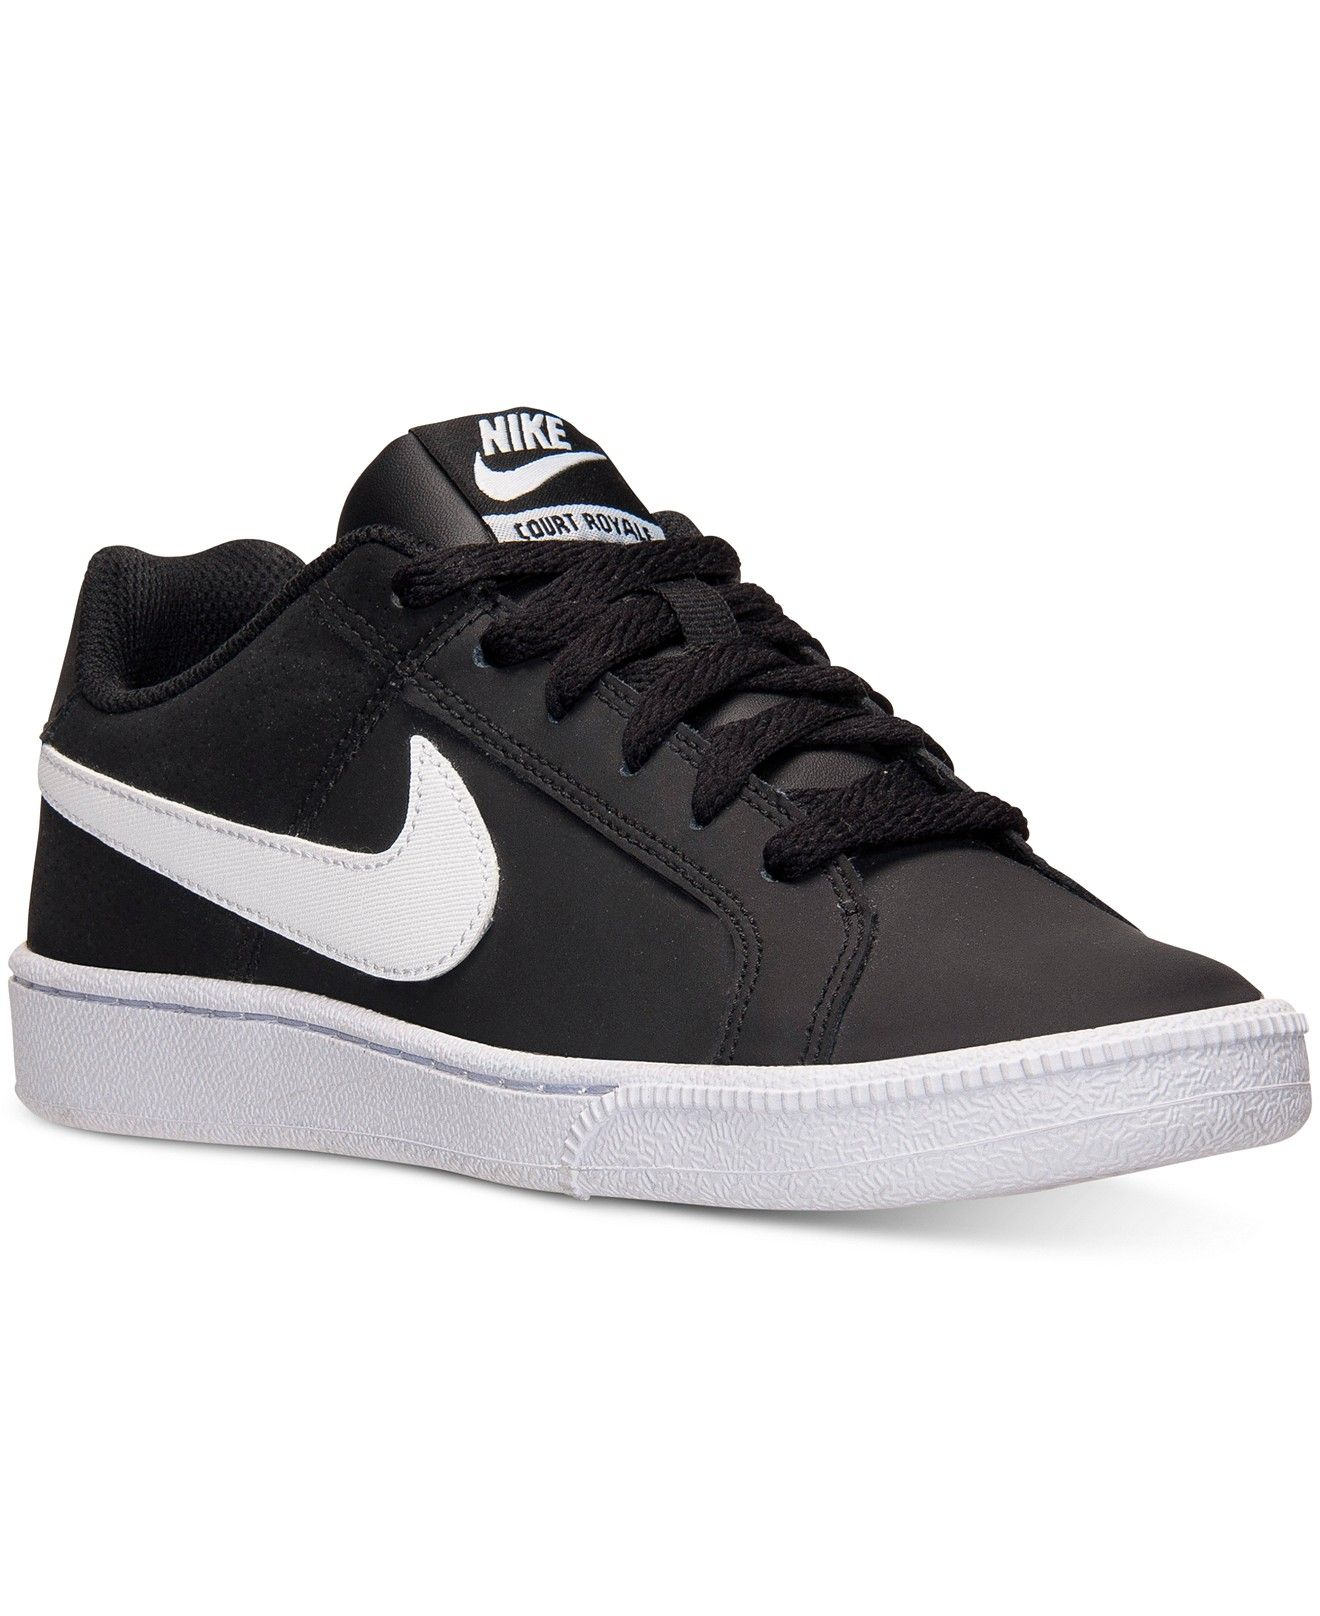 Nike Women's Court Royale Casual Sneakers from Finish Line - Finish Line  Athletic Shoes - Shoes